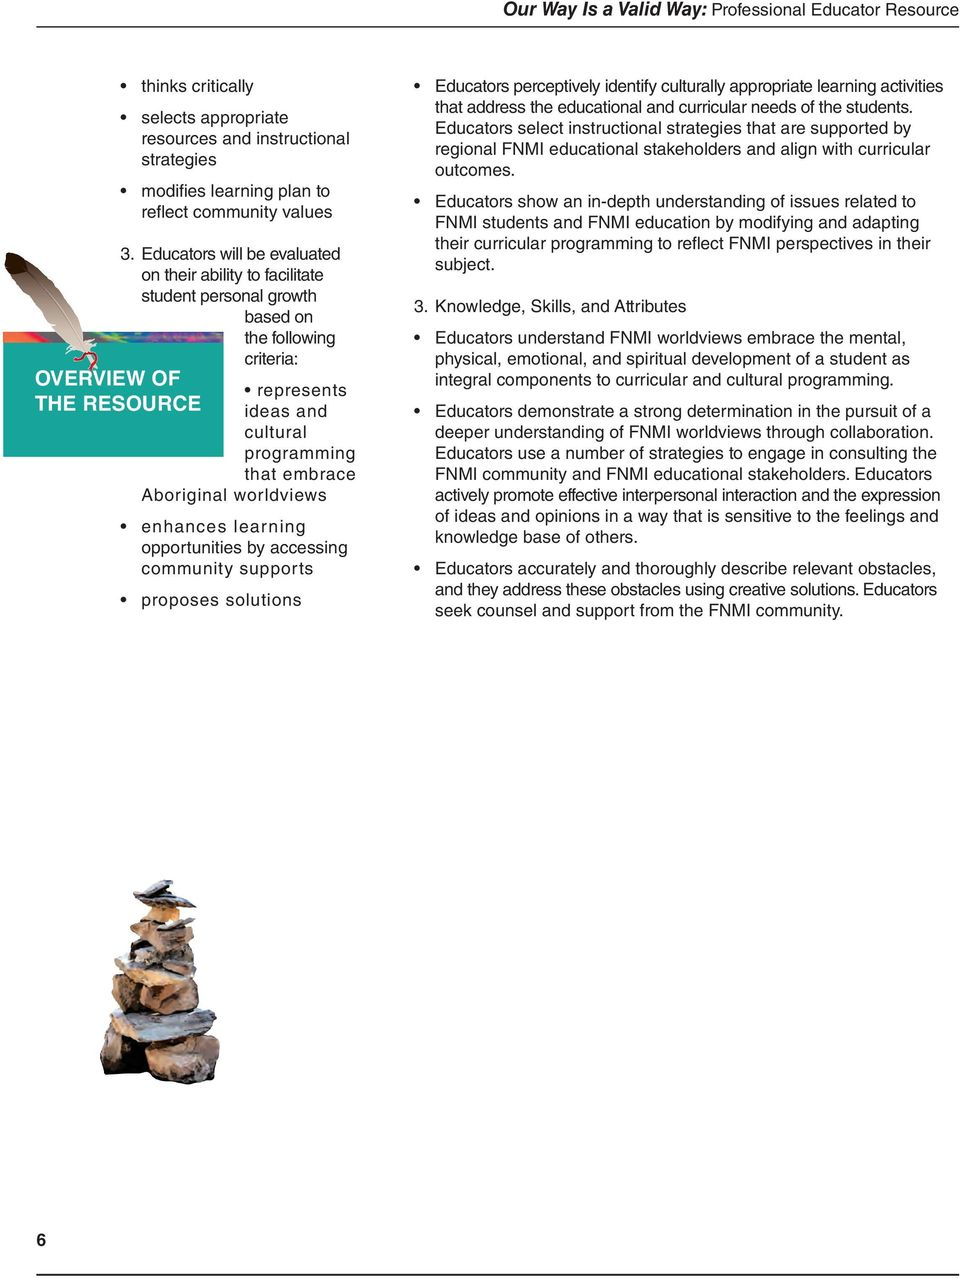 Aboriginal worldviews enhances learning opportunities by accessing community supports proposes solutions Educators perceptively identify culturally appropriate learning activities that address the